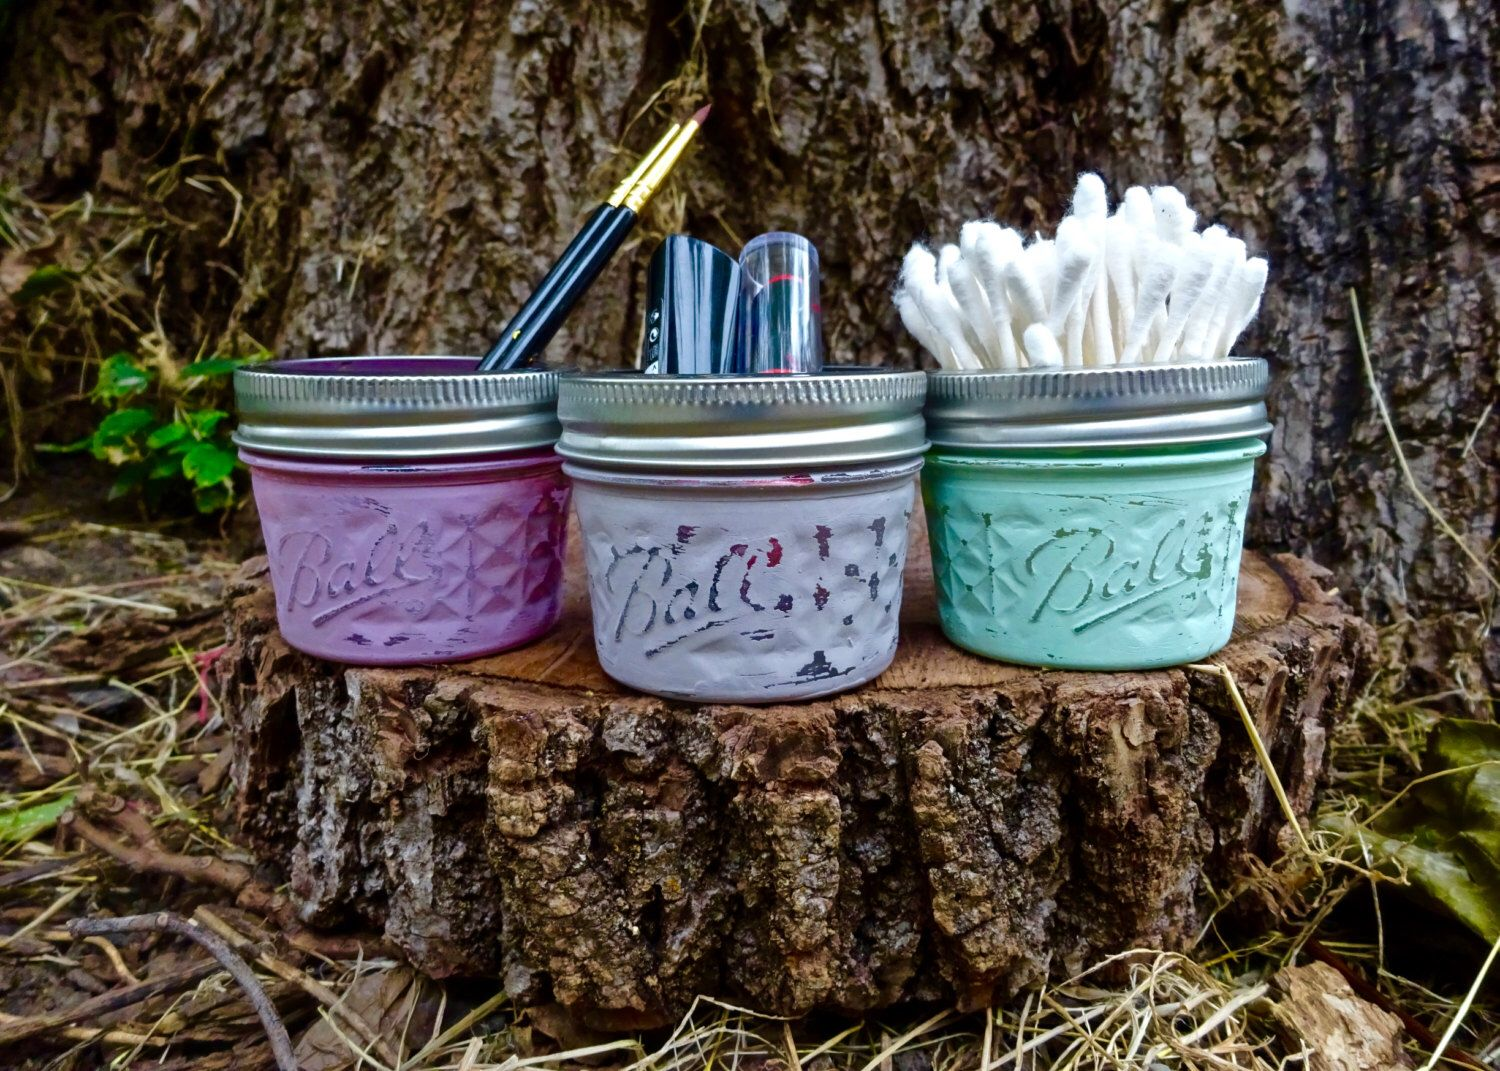 Set of 3 Small Painted Mason Jar Organizers. Bathroom Set. Bathroom Decor. Cosmetic Holder. Tissue Holder. Qtip Holder. Rustic Decor. by KDubWoodCreations on Etsy https://www.etsy.com/listing/291906693/set-of-3-small-painted-mason-jar